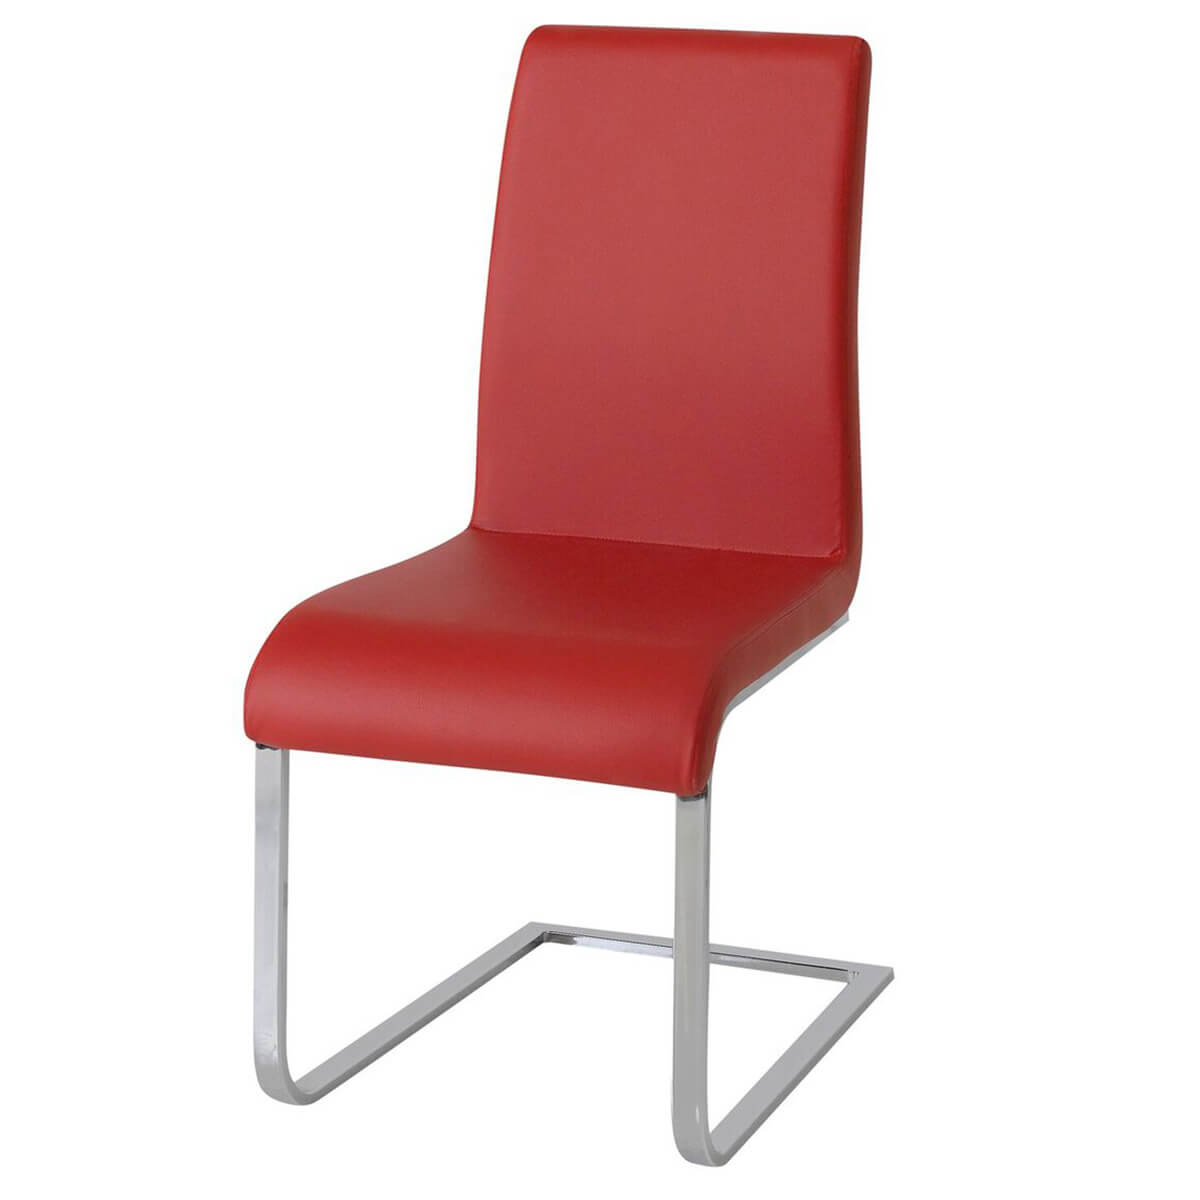 Red Leather Dining Room Chairs: Hue Multi Coloured Faux Leather Dining Chairs (Red)